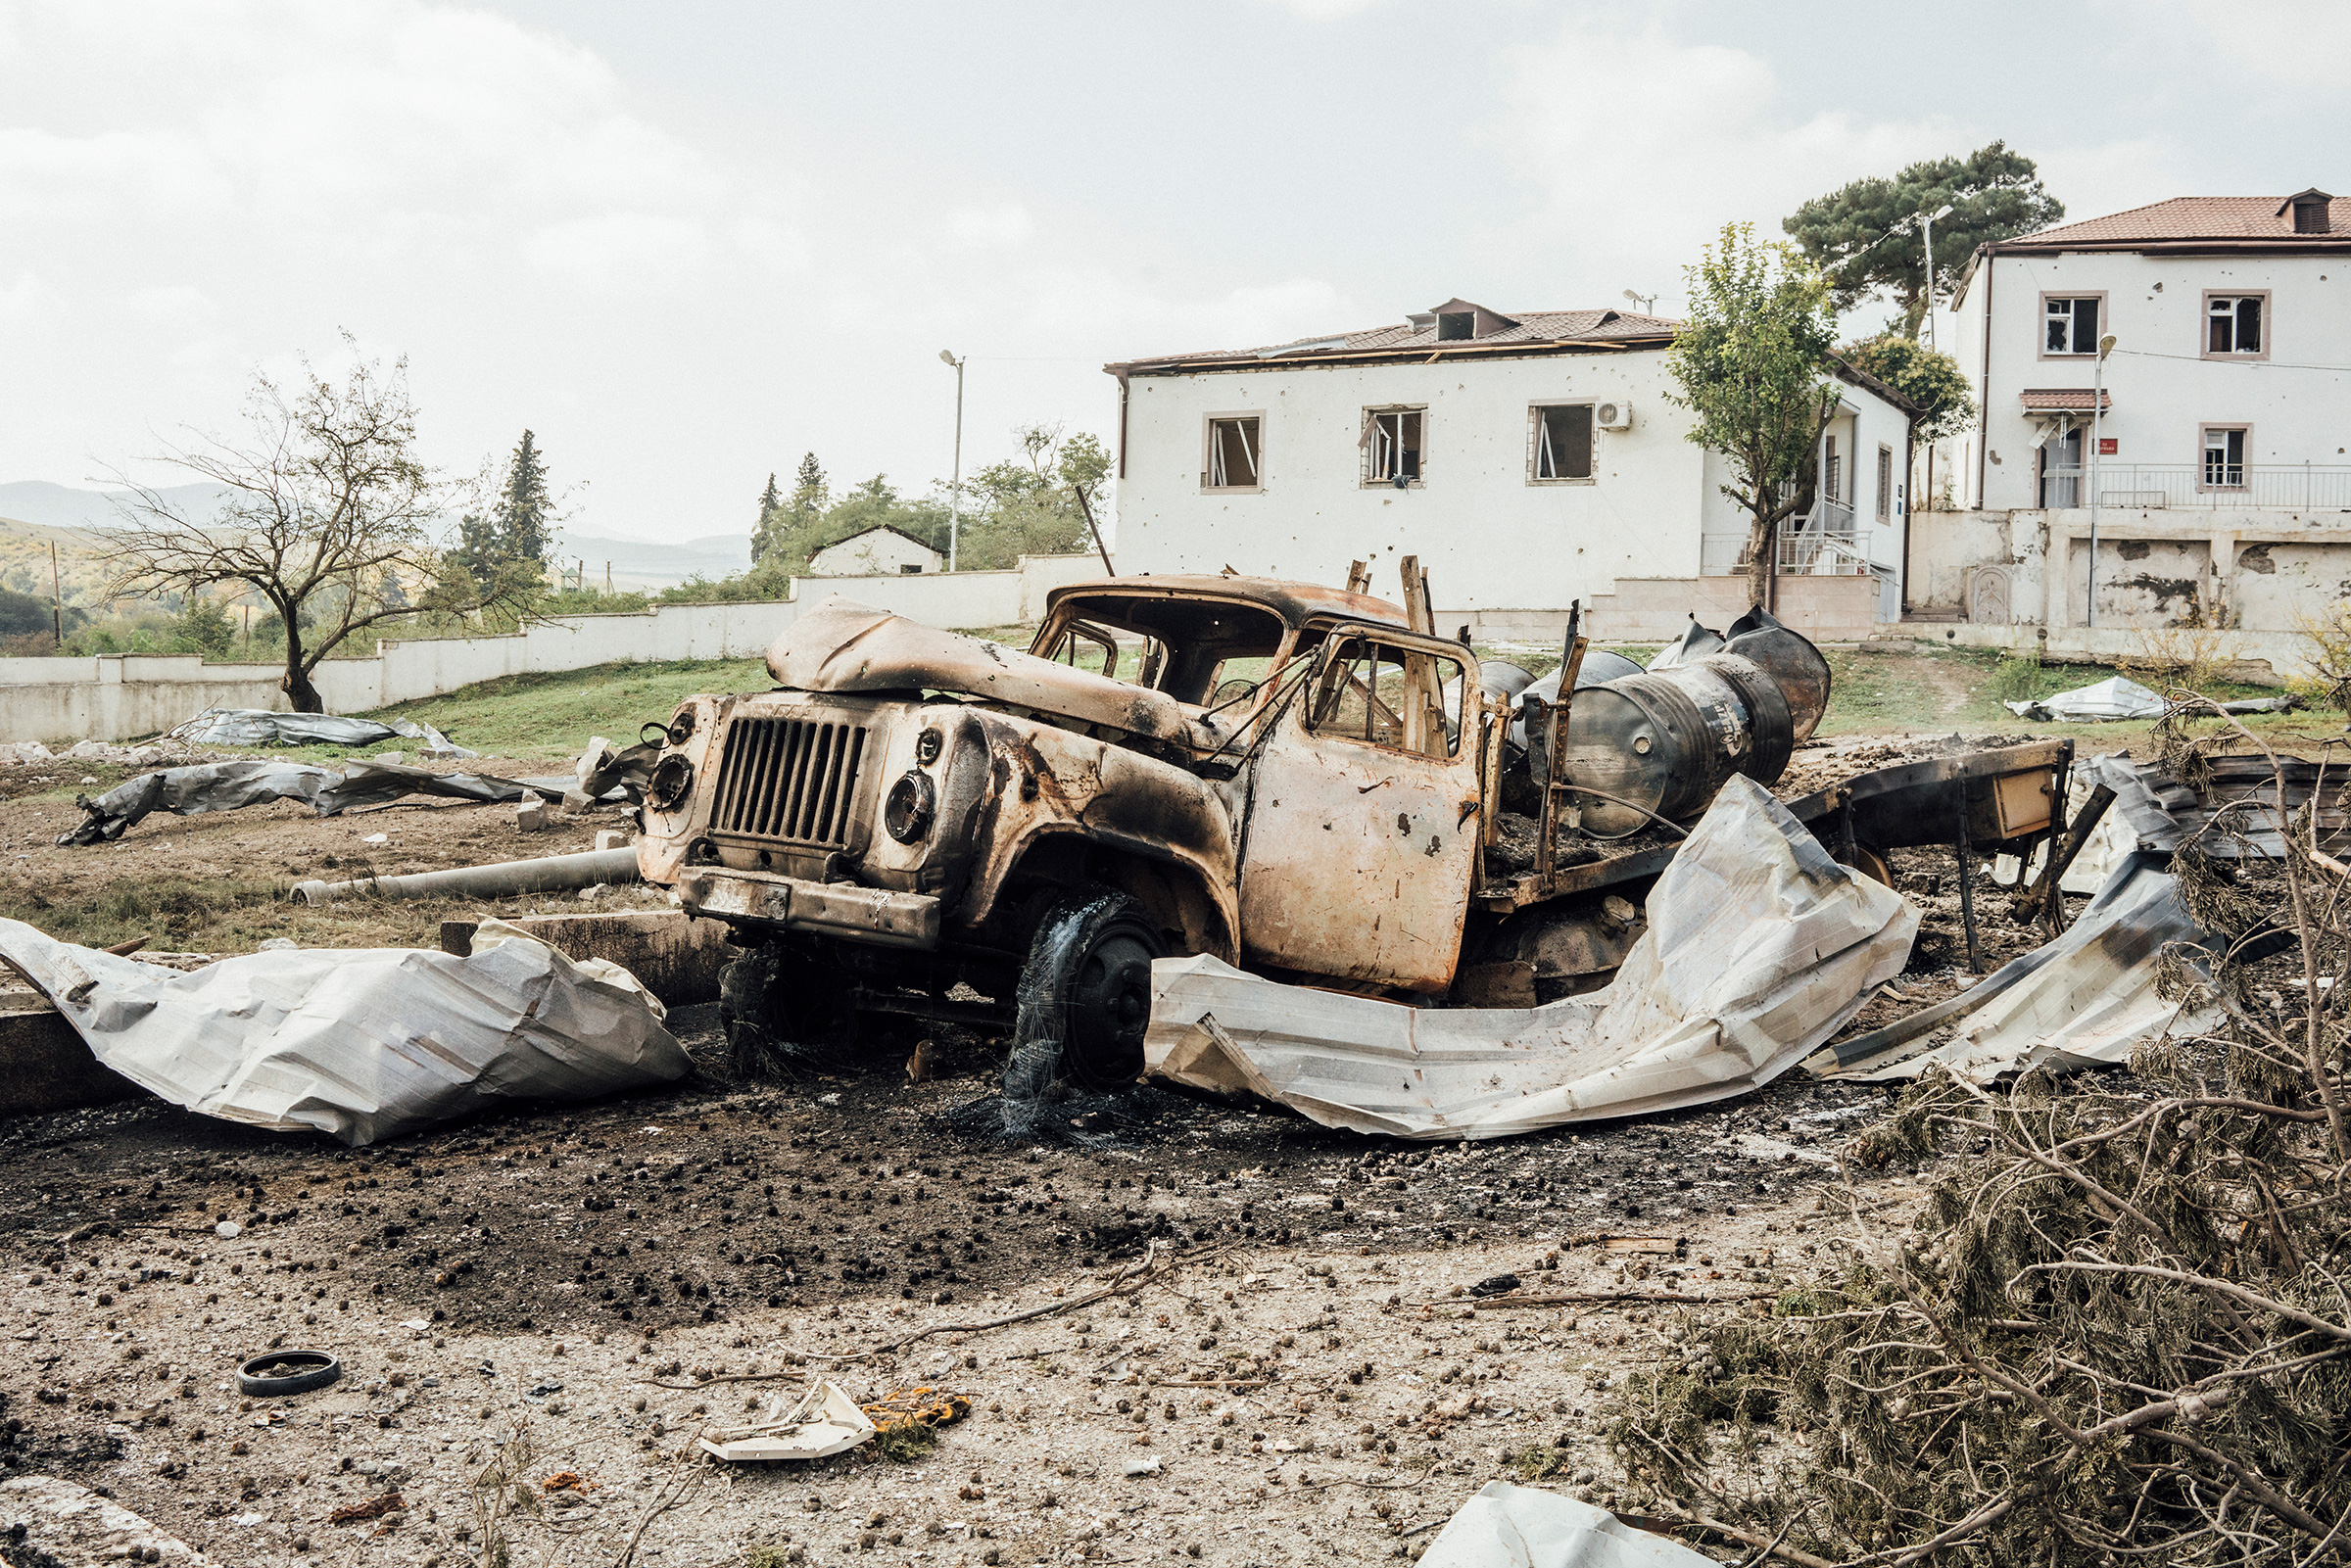 A vehicle destroyed by shelling in the town of Martakert.